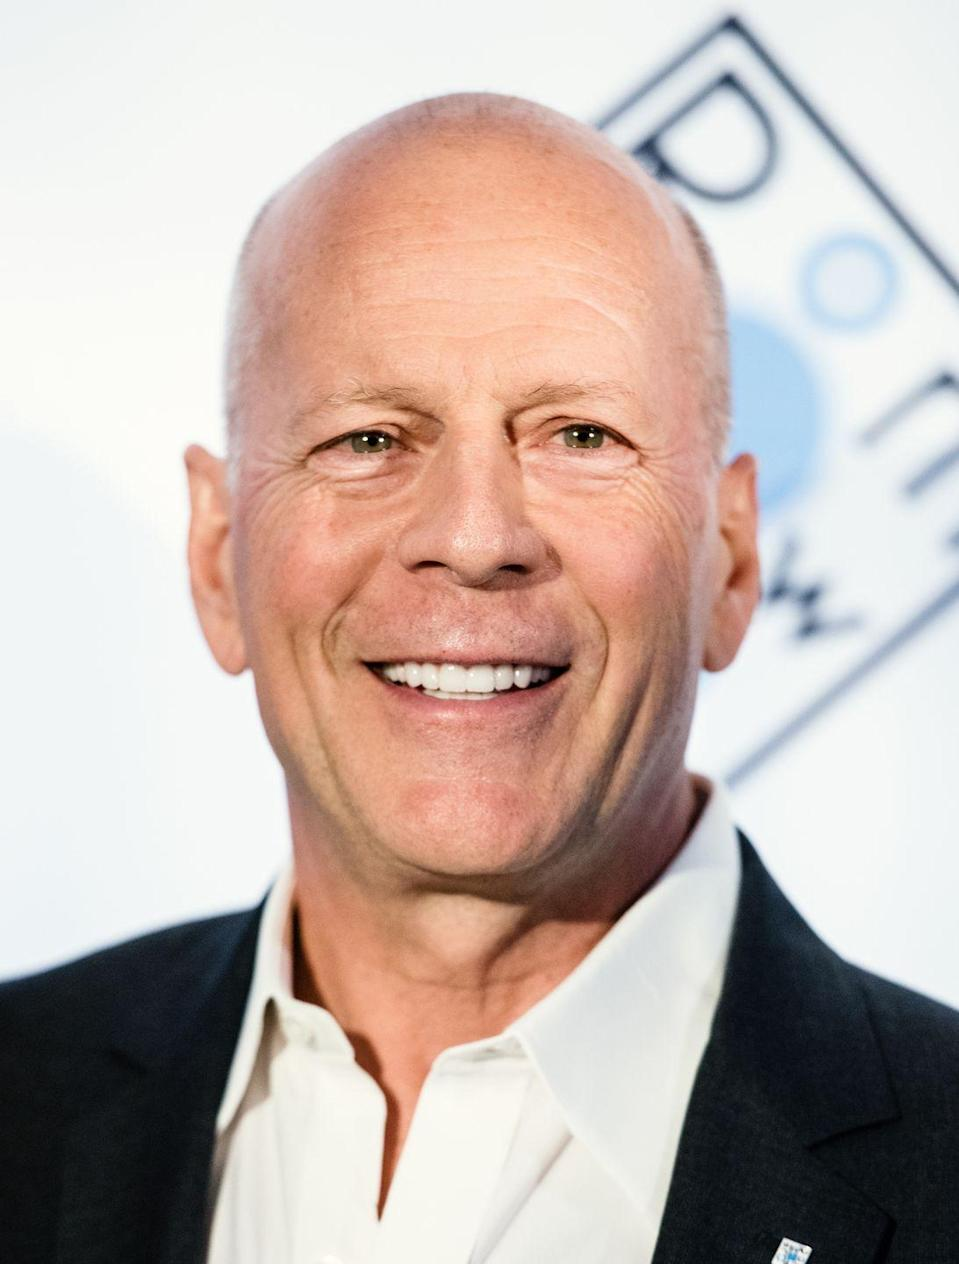 """<p>Though he hasn't admitted which film he hates exactly, when <a href=""""https://pagesix.com/2010/10/20/which-movies-does-bruce-willis-regret-making/"""" rel=""""nofollow noopener"""" target=""""_blank"""" data-ylk=""""slk:asked"""" class=""""link rapid-noclick-resp"""">asked</a> if he regrets making any of his 60-plus films Willis revealed, """"about a dozen. I'd love to strike them off the list."""" He also <a href=""""http://www.telegraph.co.uk/culture/film/film-news/10240313/Bruce-Willis-Im-bored-of-making-action-movies.html"""" rel=""""nofollow noopener"""" target=""""_blank"""" data-ylk=""""slk:admitted"""" class=""""link rapid-noclick-resp"""">admitted</a> he's """"bored of making action movies."""" </p>"""